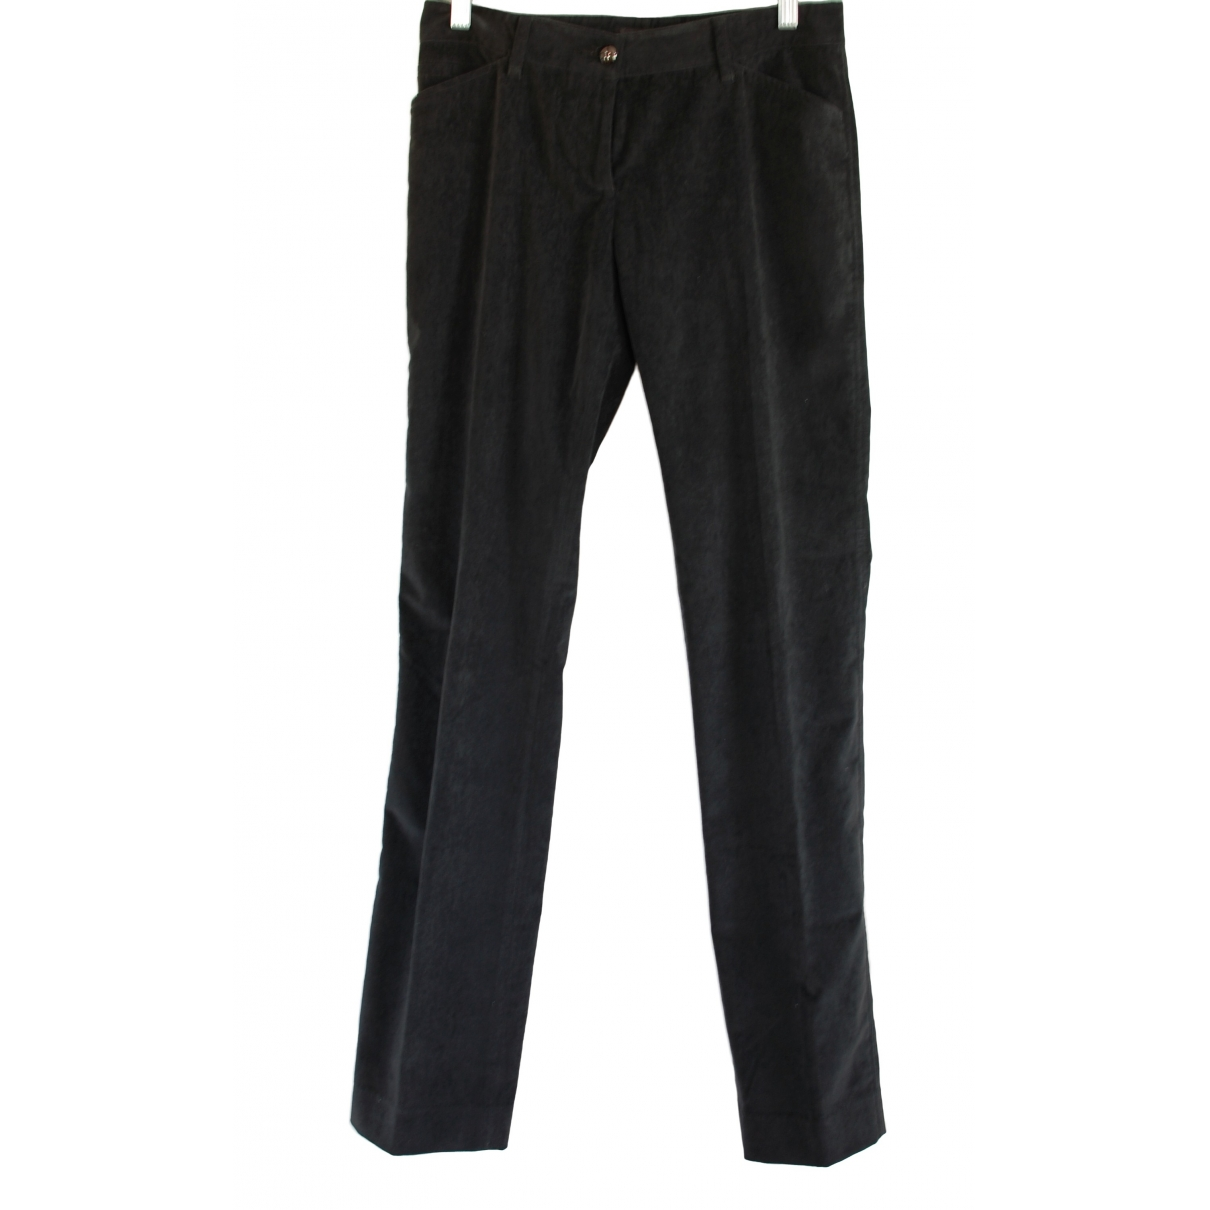 Dolce & Gabbana \N Anthracite Cotton Trousers for Women 40 IT